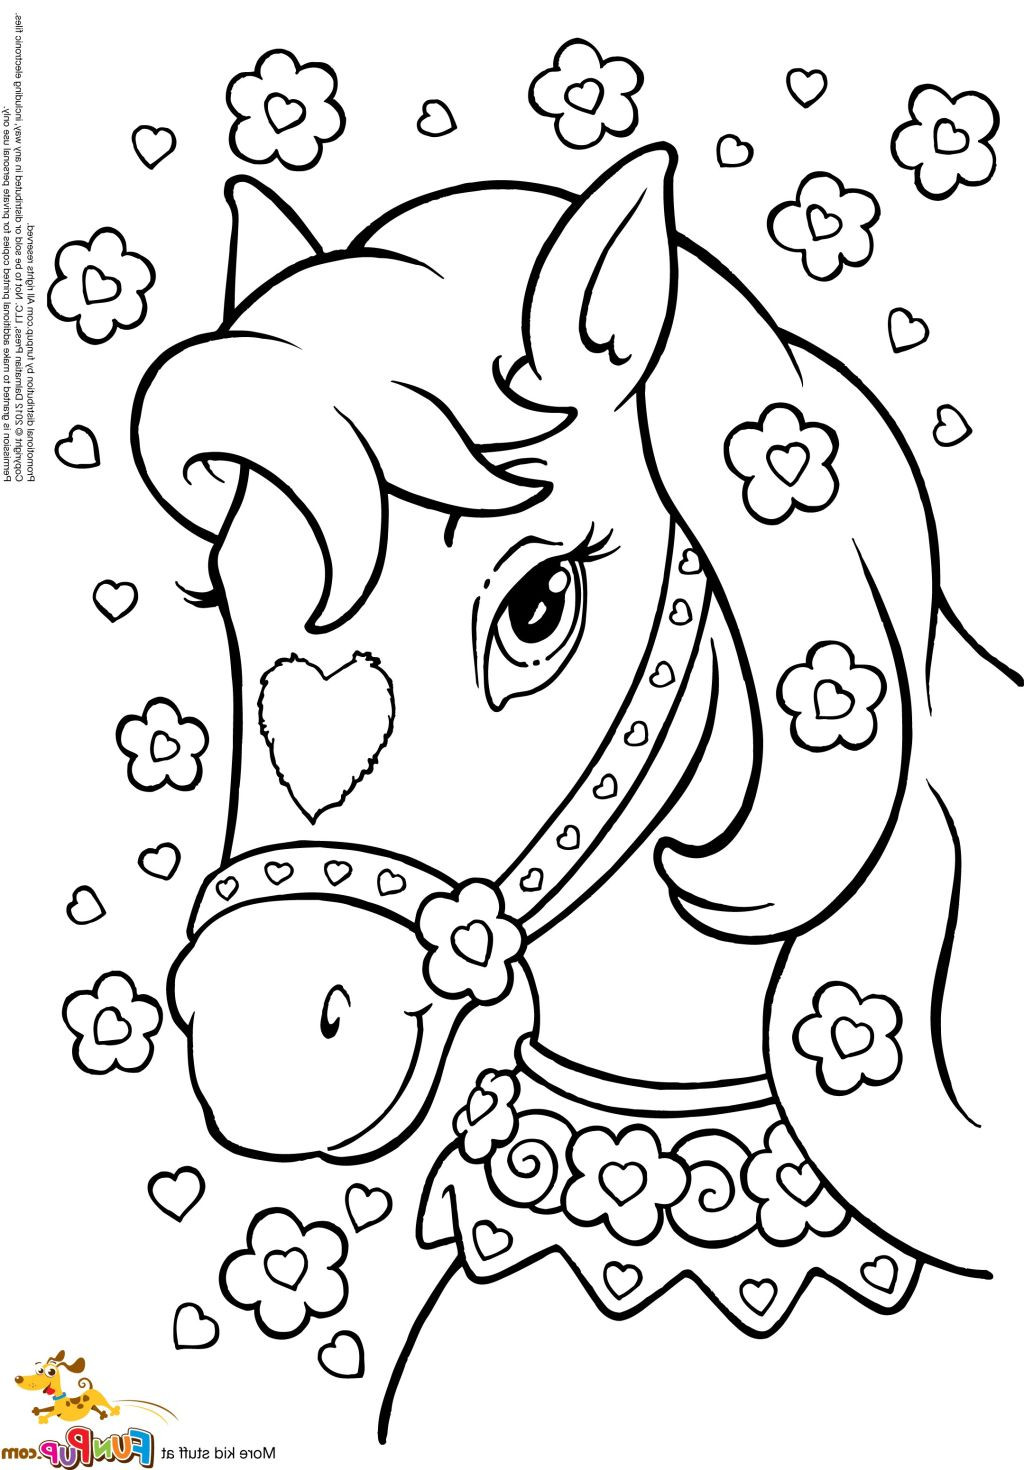 Coloring_Pages  38 Sofia Princess Coloring Pages Sofia The First Coloring